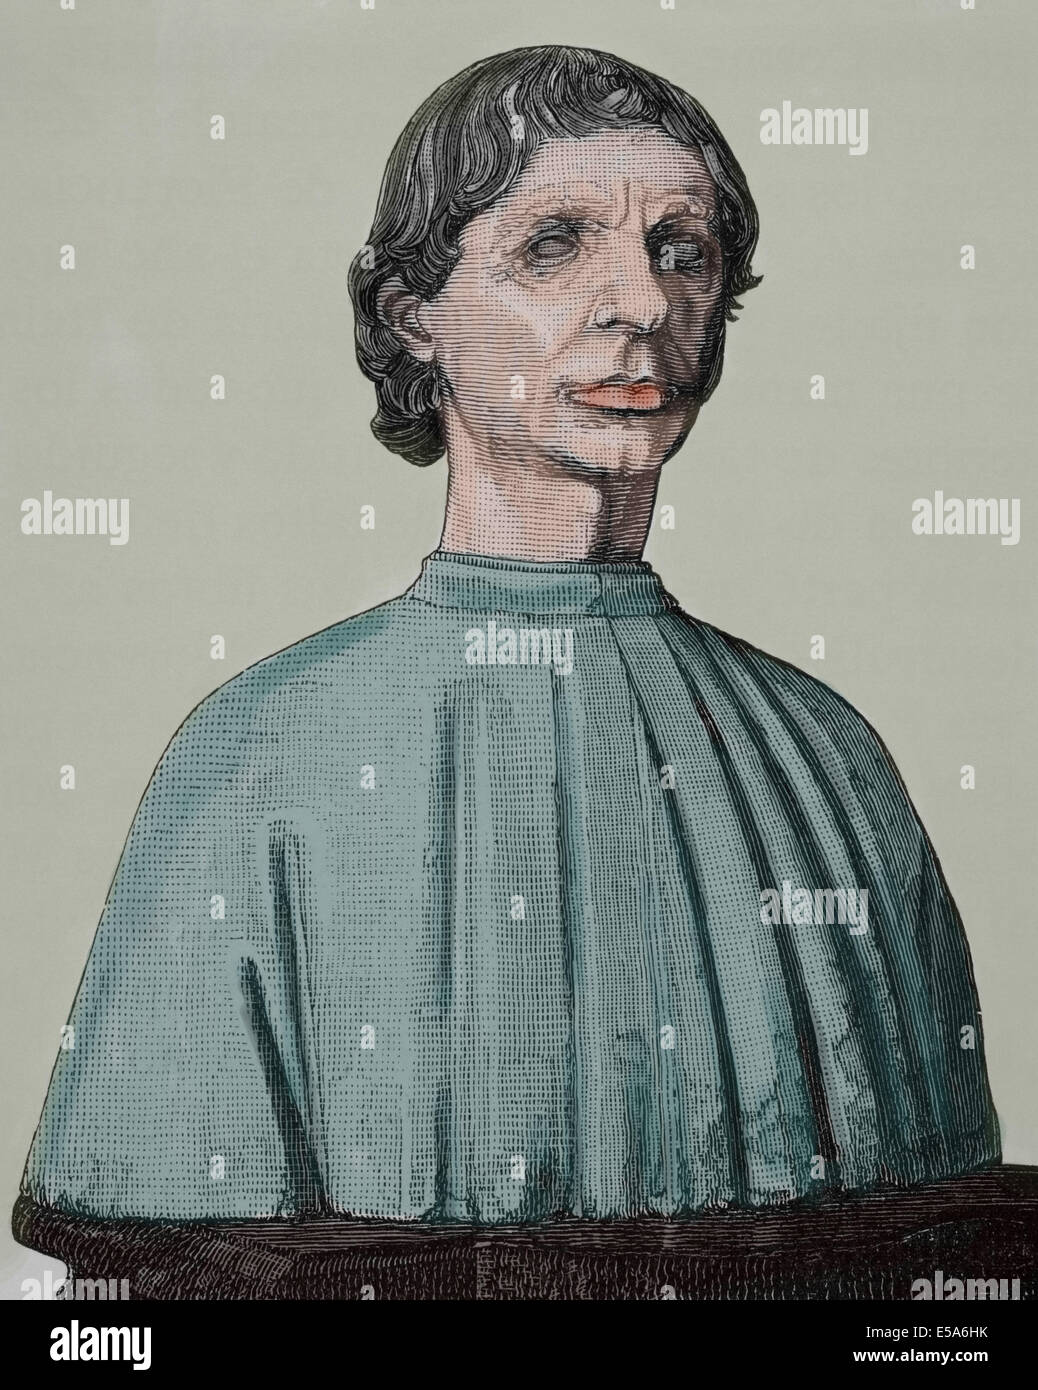 niccolo machiavelli stock photos niccolo machiavelli stock niccolo machiavelli 1469 1527 italian historian politician diplomat humanist